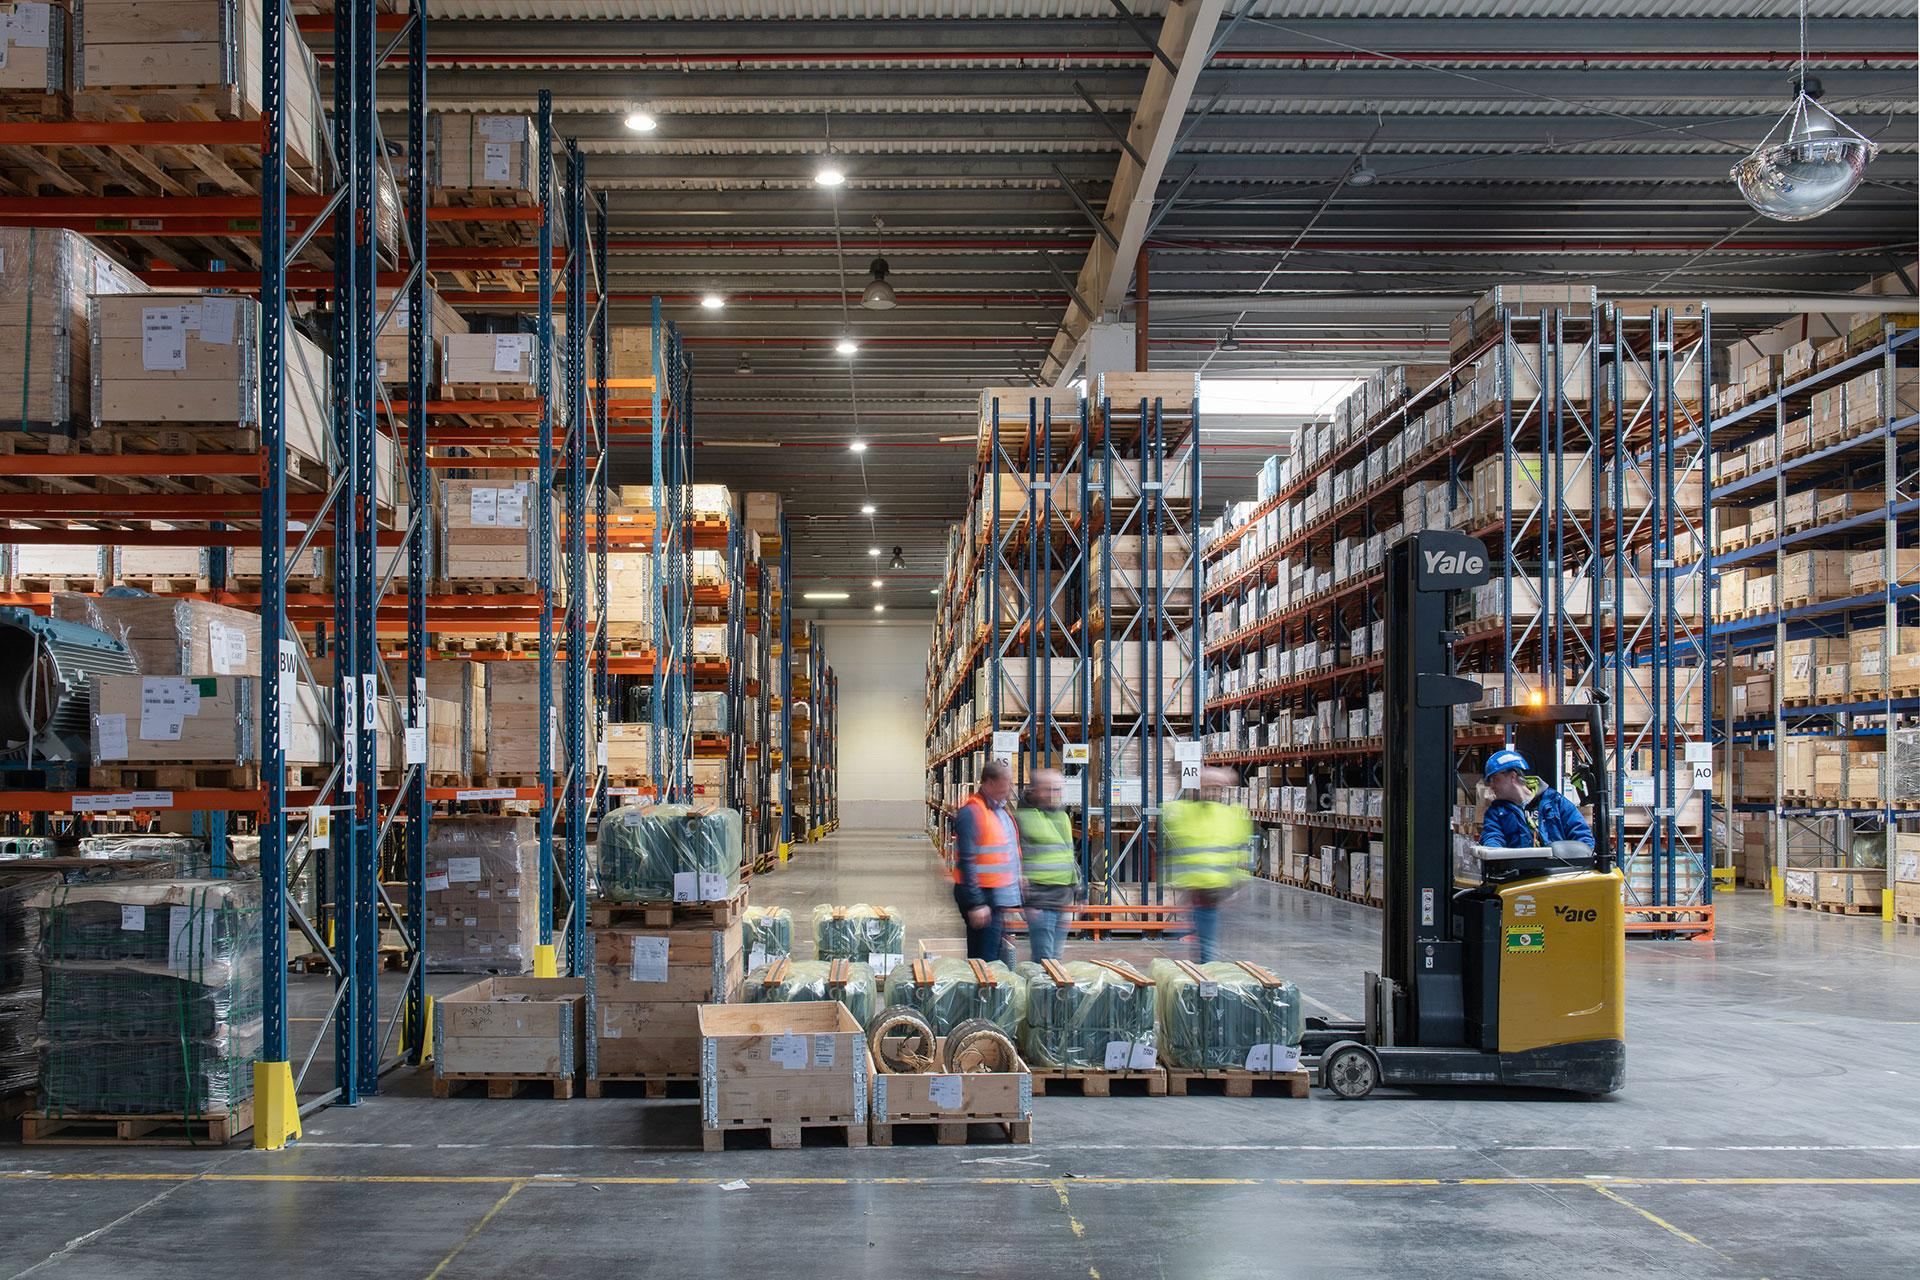 INDU BAY luminaire ensures excellent visibility so workers can easily identify parcels in the warehouse